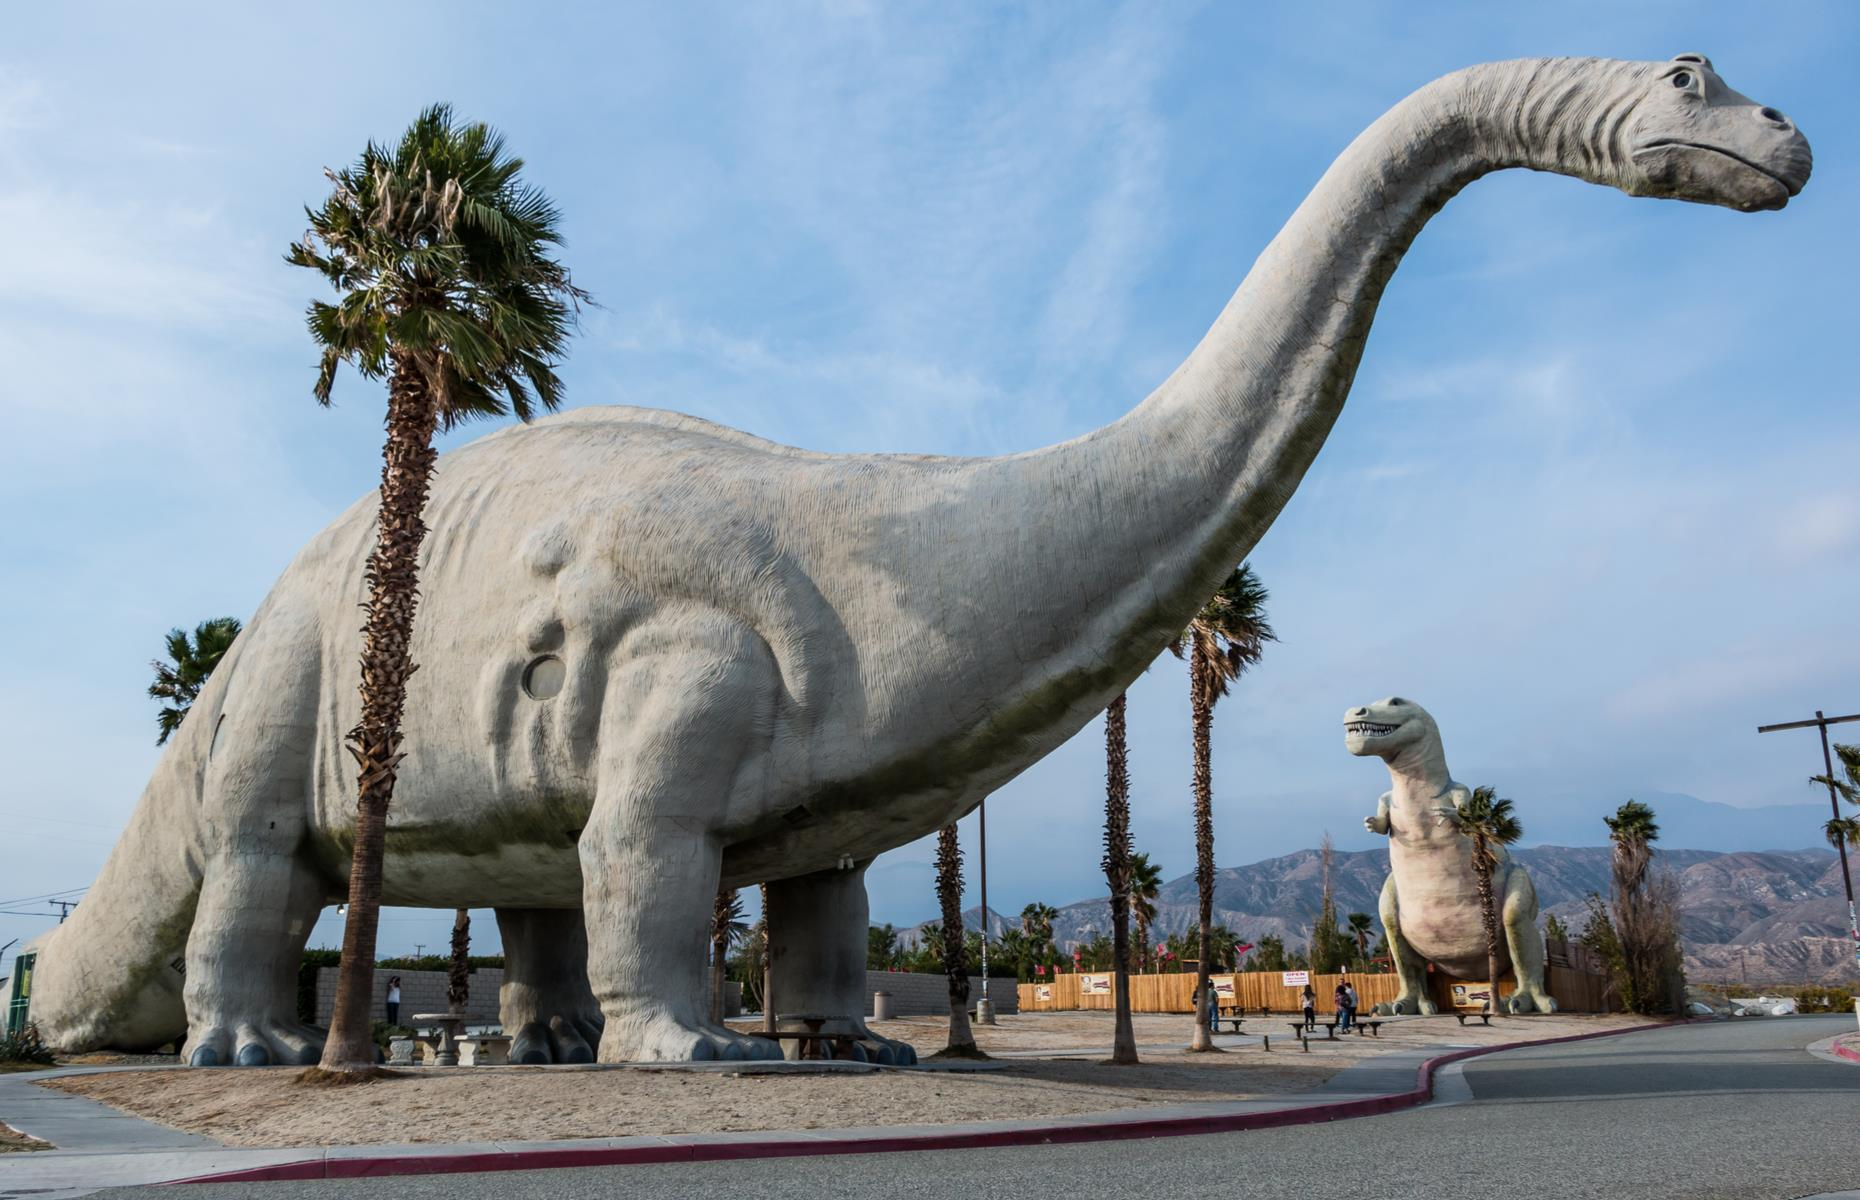 Slide 11 of 101: The drive from city to city takes around one hour 45 minutes, but attractions en route tend to slow travelers down. There's the Cabazon Dinosaurs (pictured), a quirky roadside amusement famed for its giant robotic dinosaurs. There's also the San Gorgonio Pass, a particularly striking stretch of roadway with mountain views and a large wind farm. Palm Springs itself is famed for its resorts and its panorama-wielding aerial tramway (the tramway is temporarily closed – have a look at the website for updates).